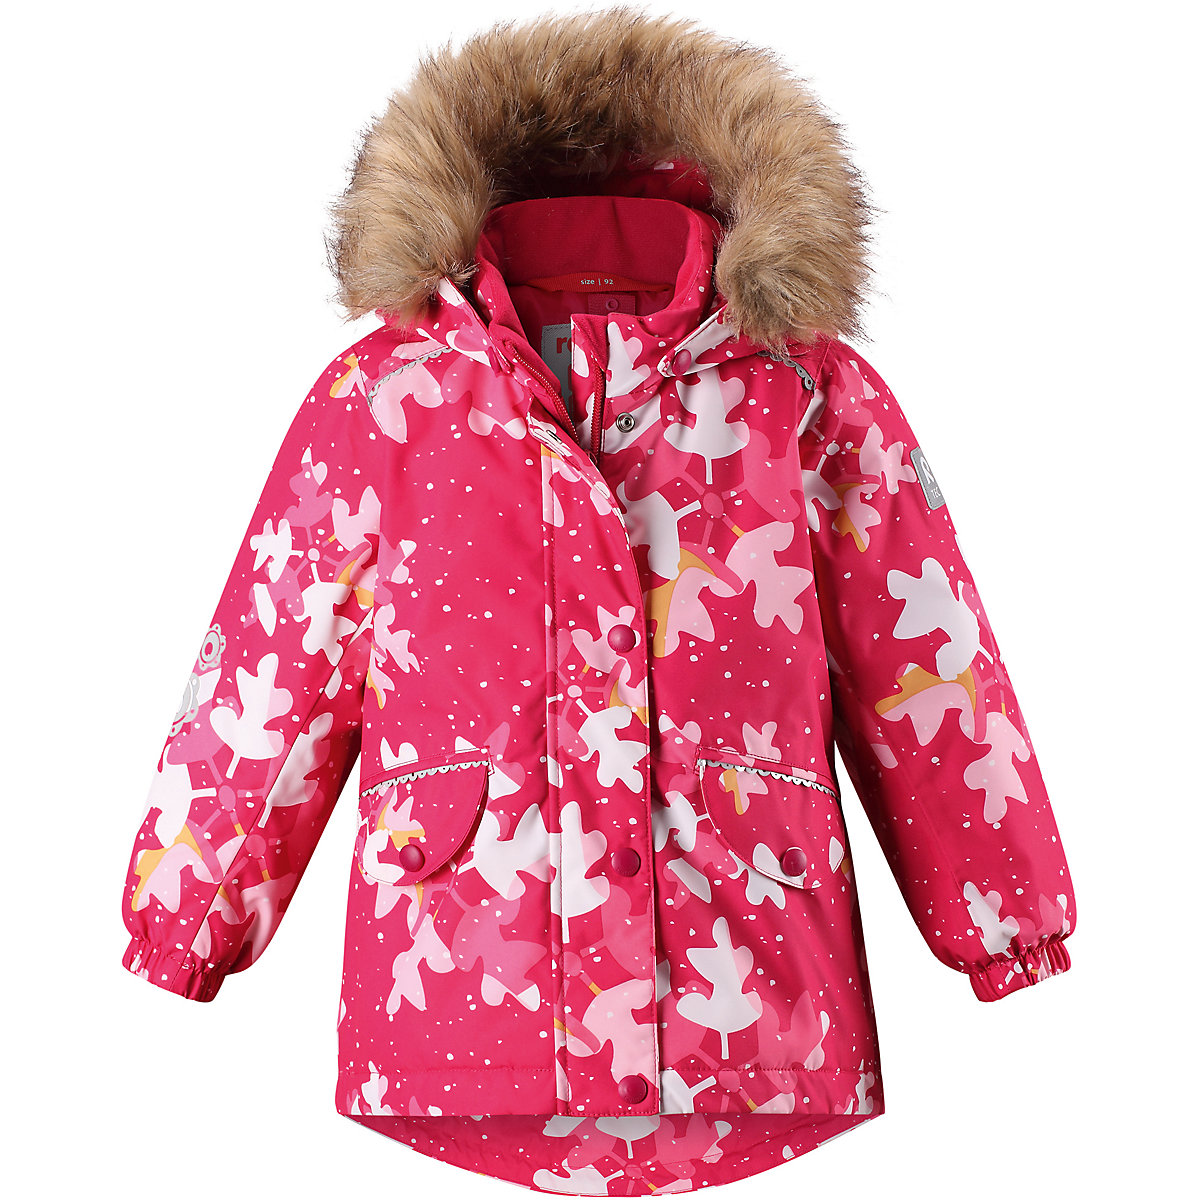 REIMA Jackets 8665245 For girls Polyester  winter fur baby clothing girl Jacket winter jacket men casual male coat warm men zipper outwear duck down jacket middle long mens parka with fur hood thick jackets